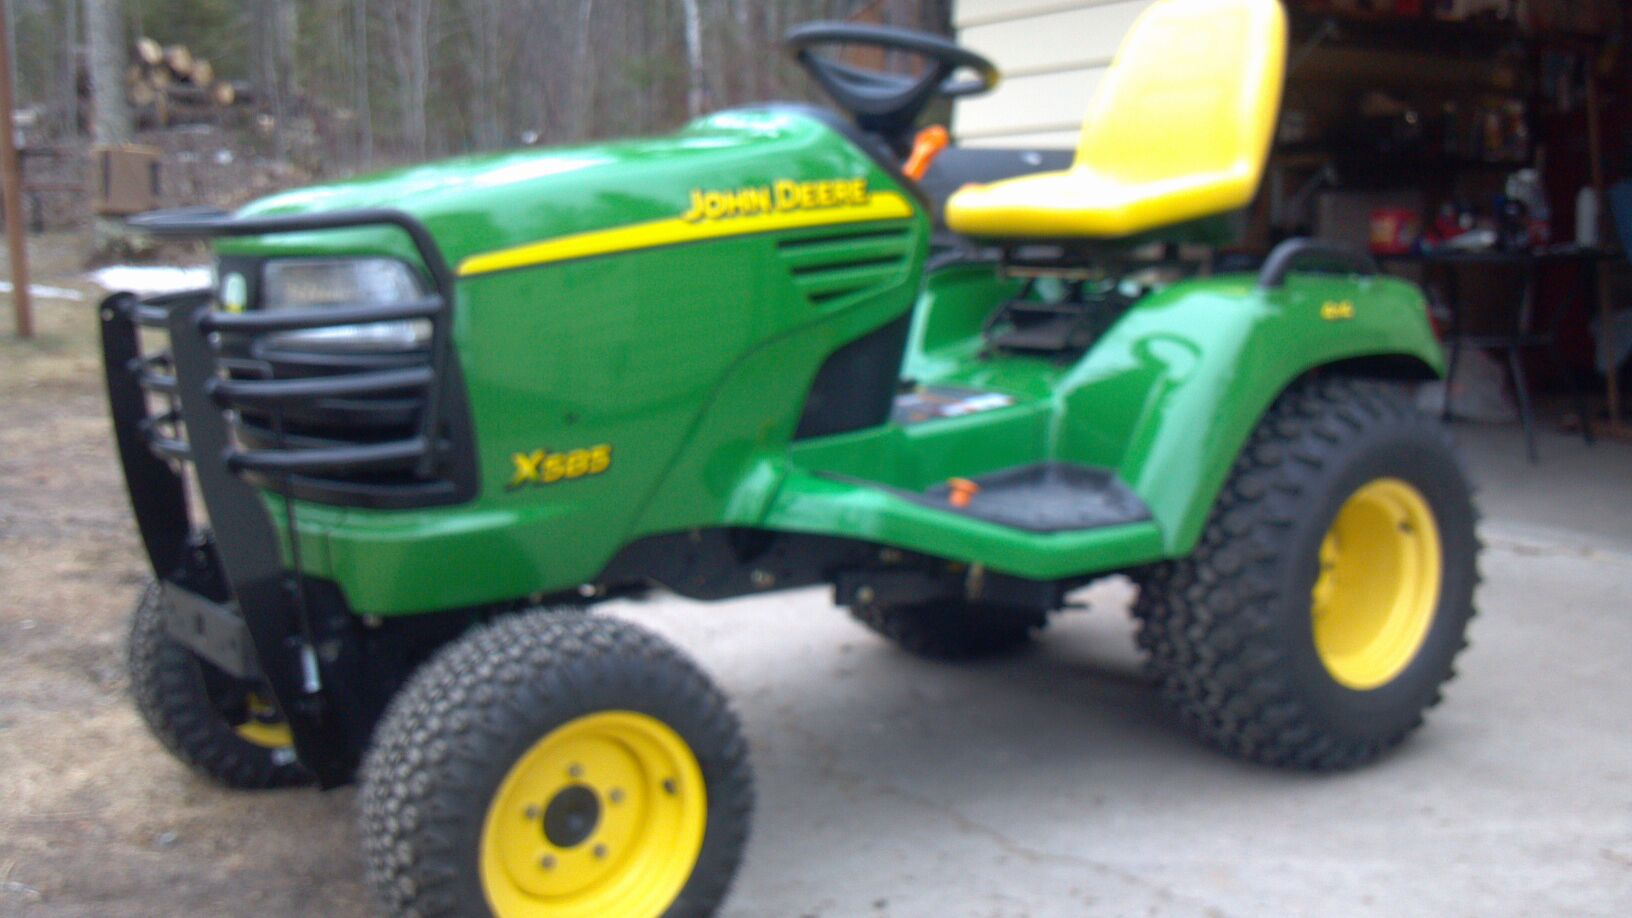 Garden Tractor Brush Guard : Brush guard question for